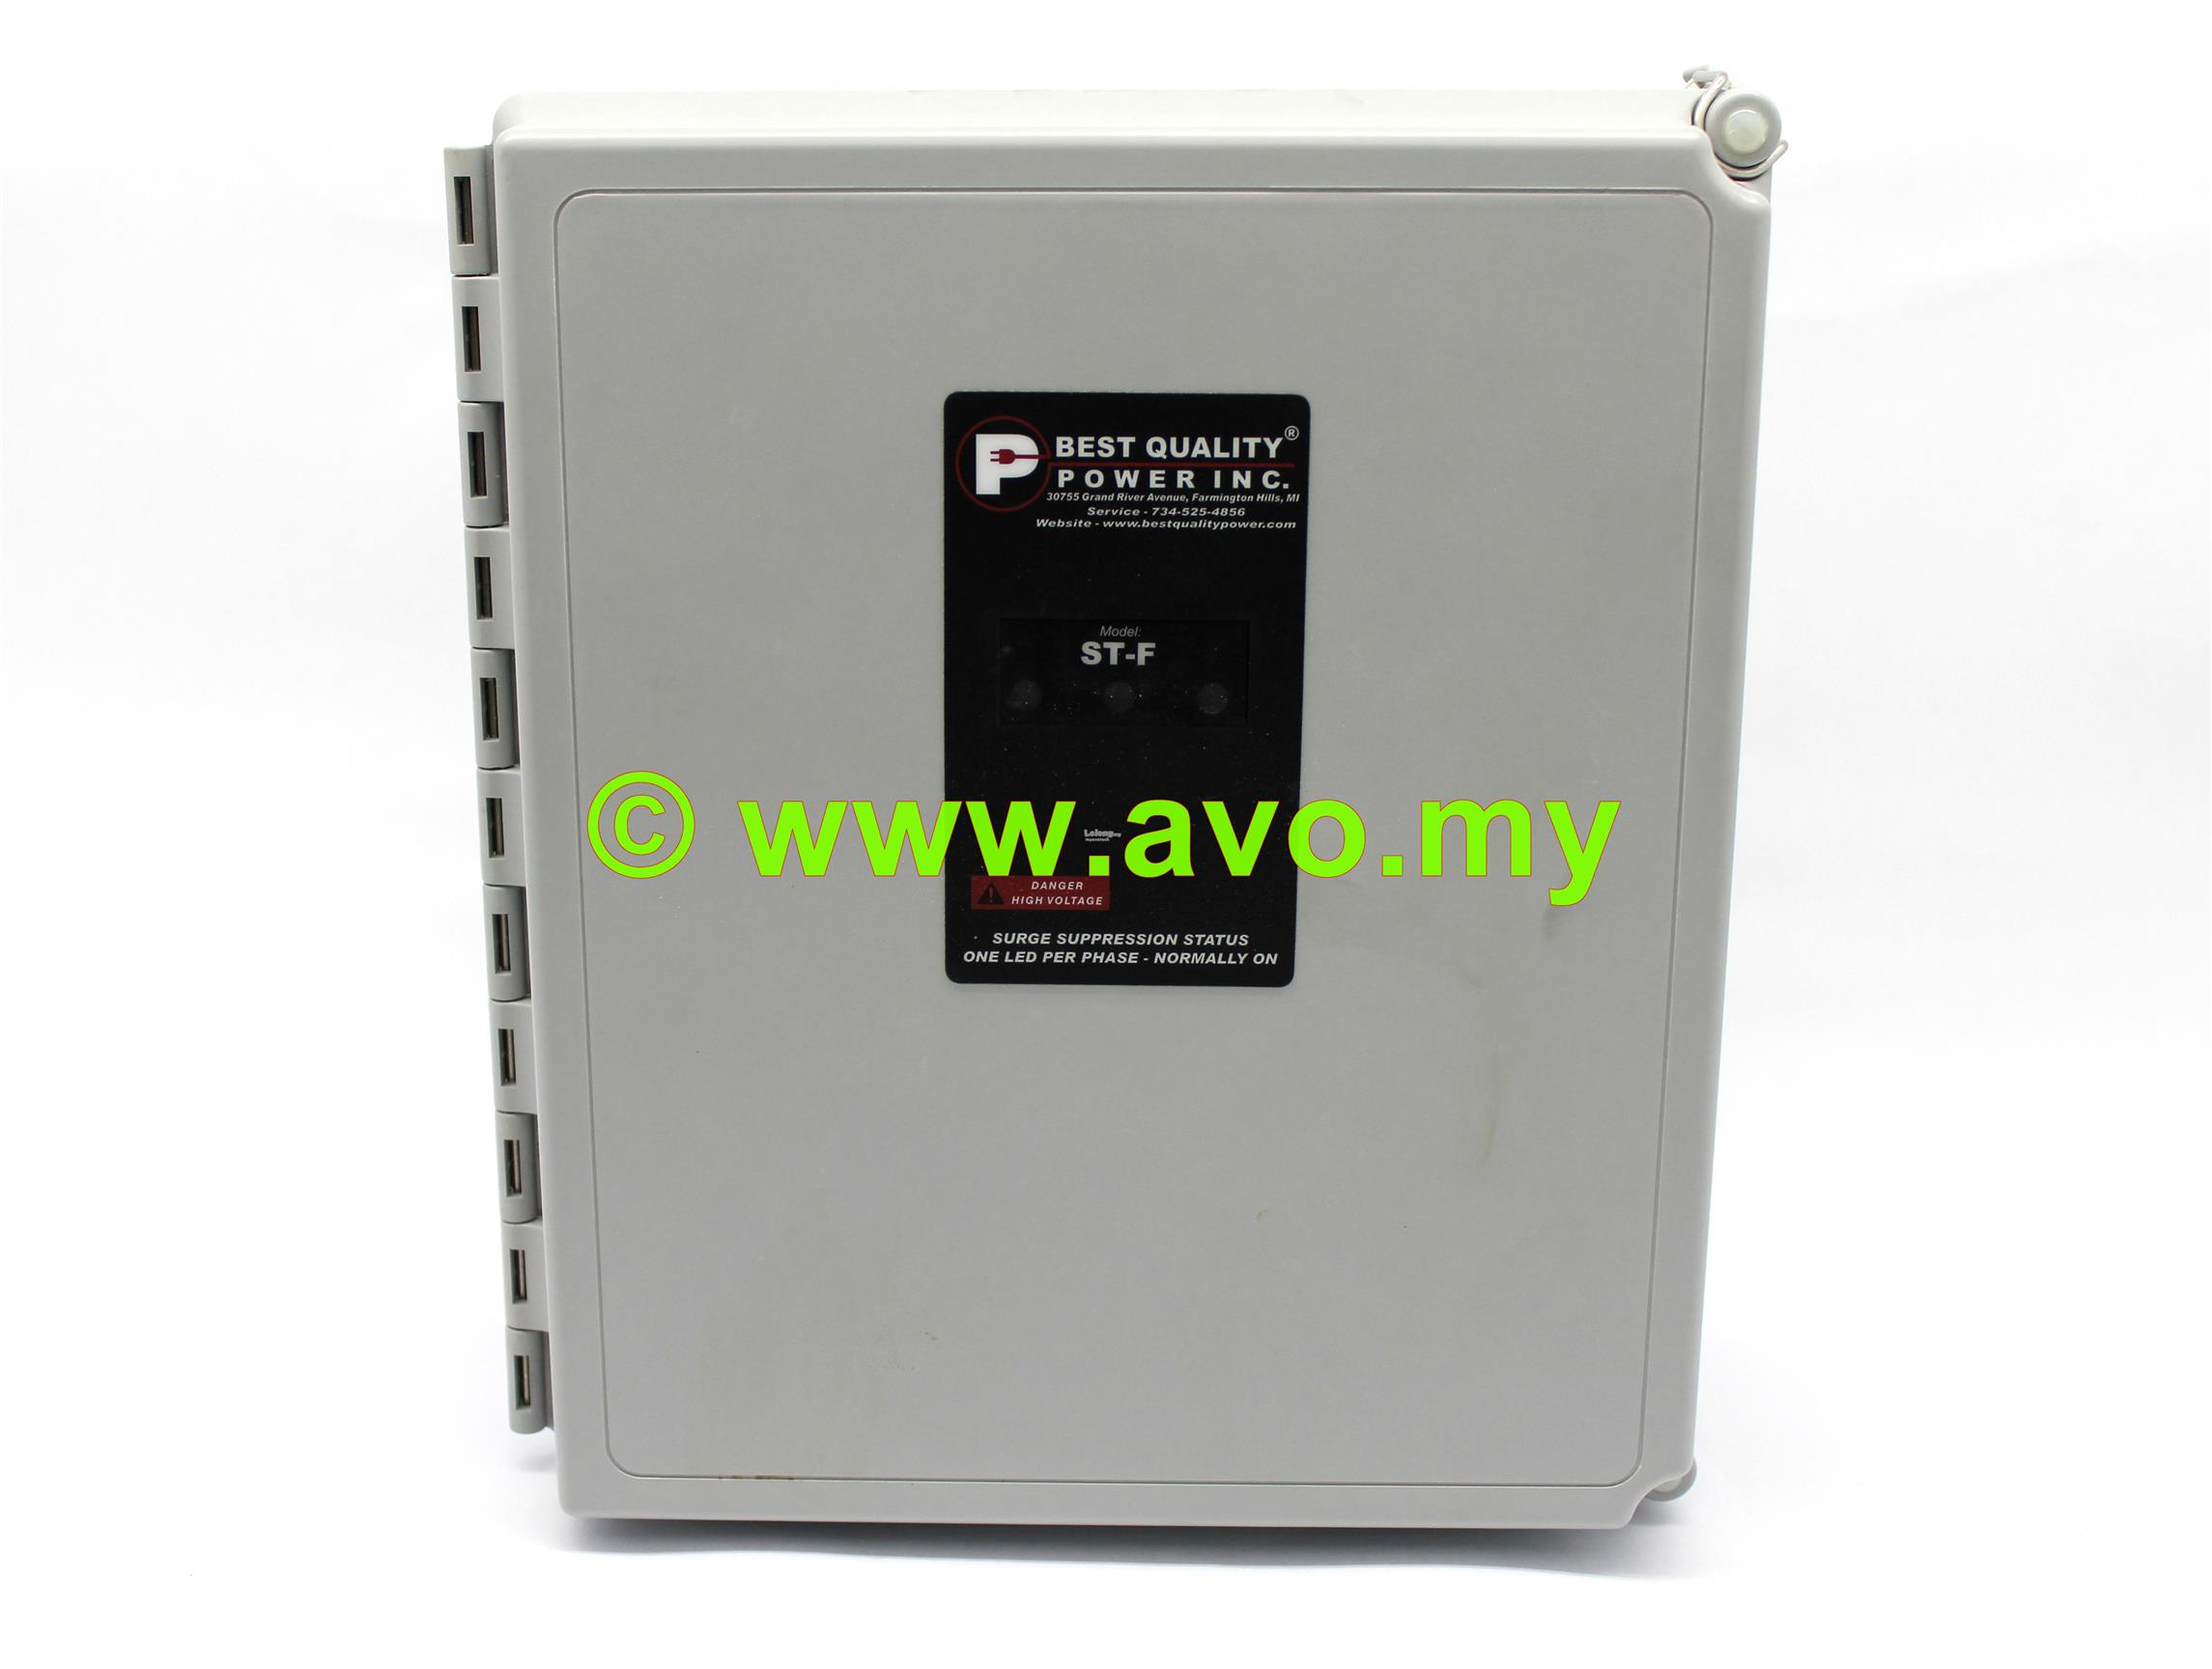 Best Quality Power CF Series, Model: ST-F-040-1S2-CF-G